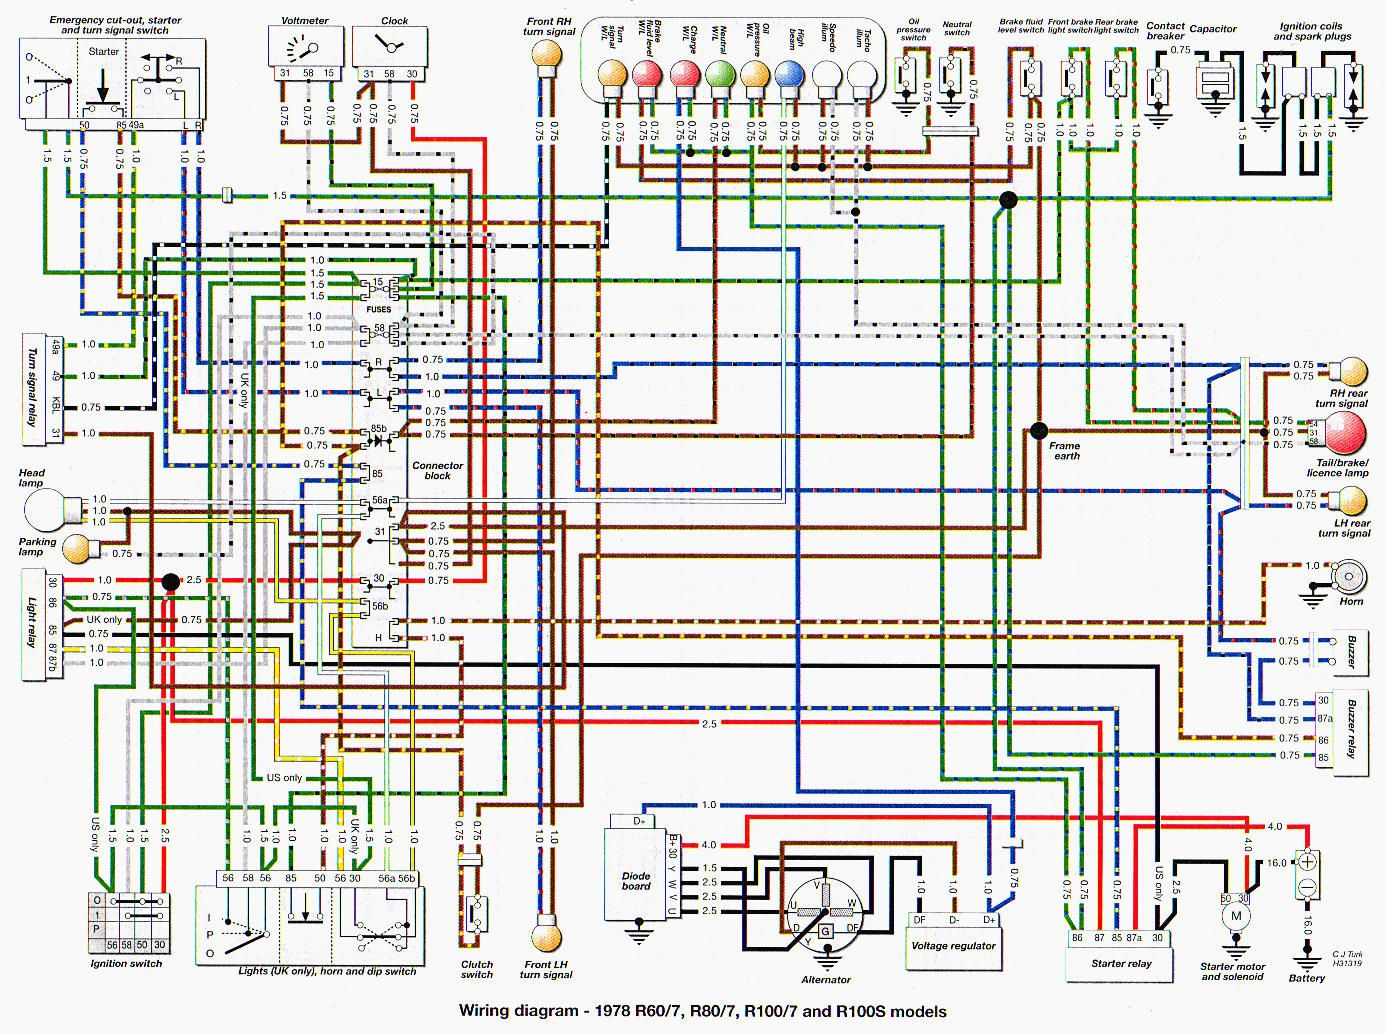 hight resolution of bmw r100 wiring diagram wiring diagram name bmw r100 7 wiring diagram bmw r100 wiring diagram